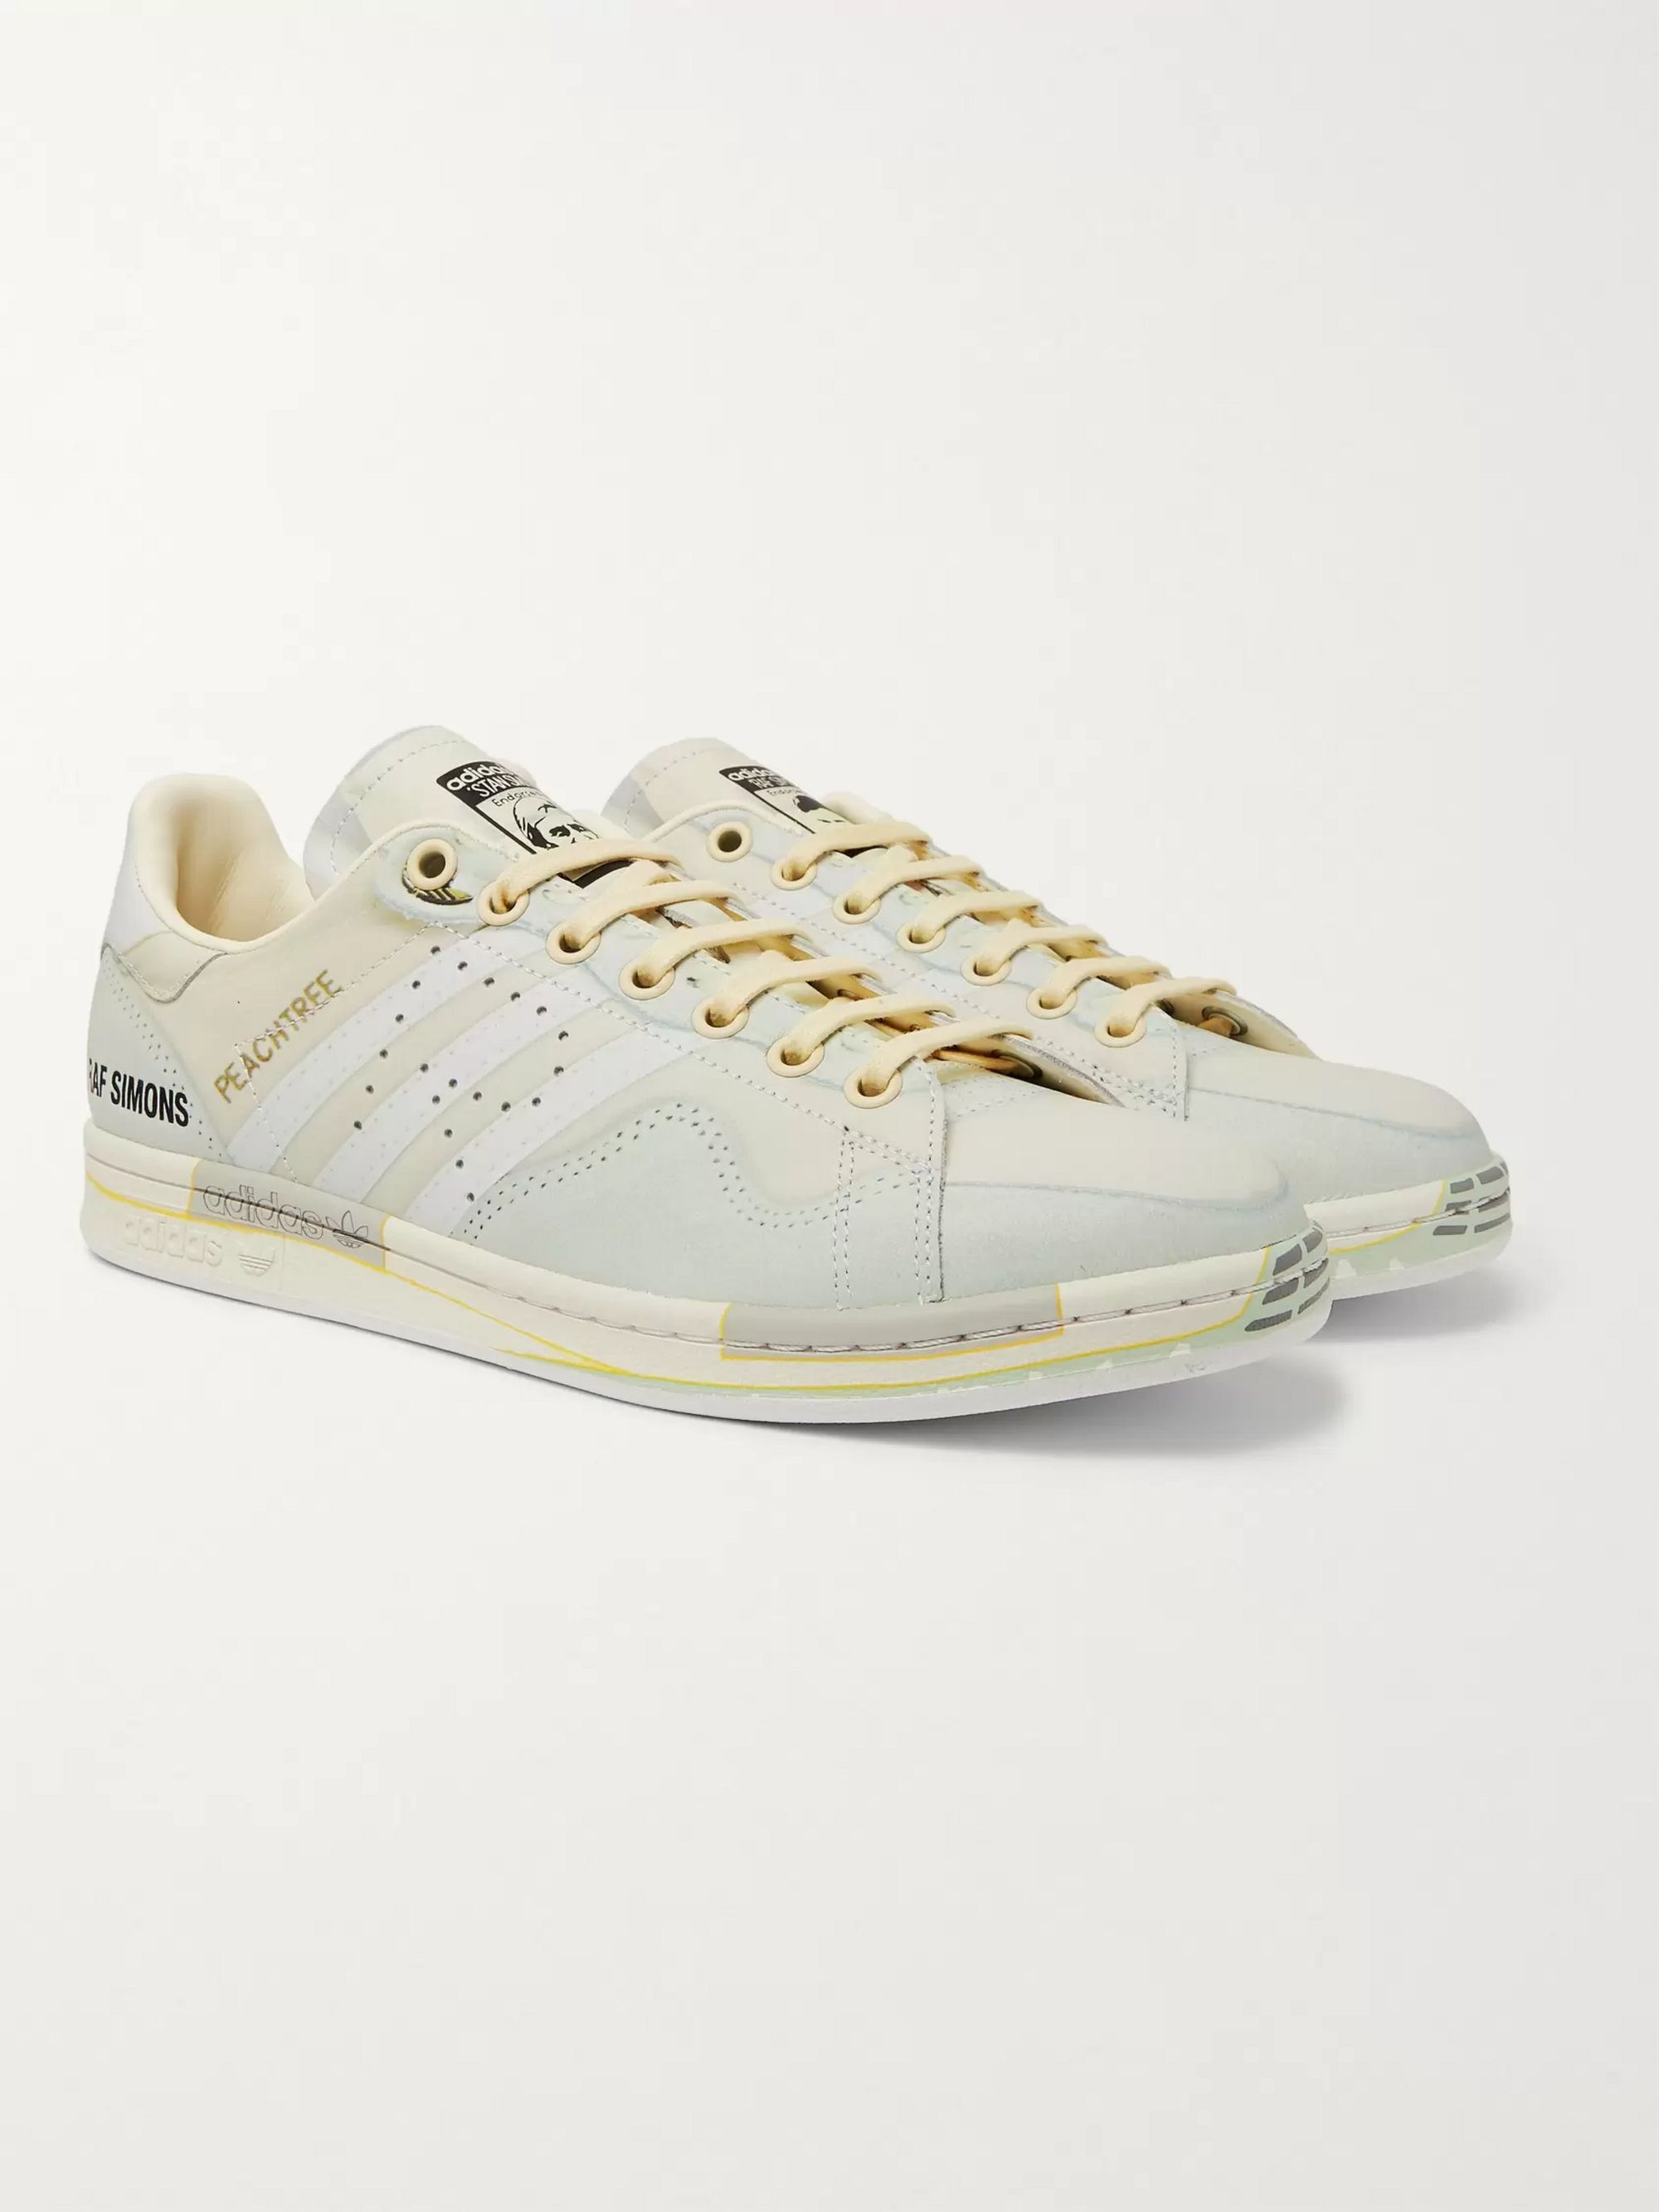 good out x price reduced differently + adidas Originals Peach Stan Smith Printed Leather Sneakers